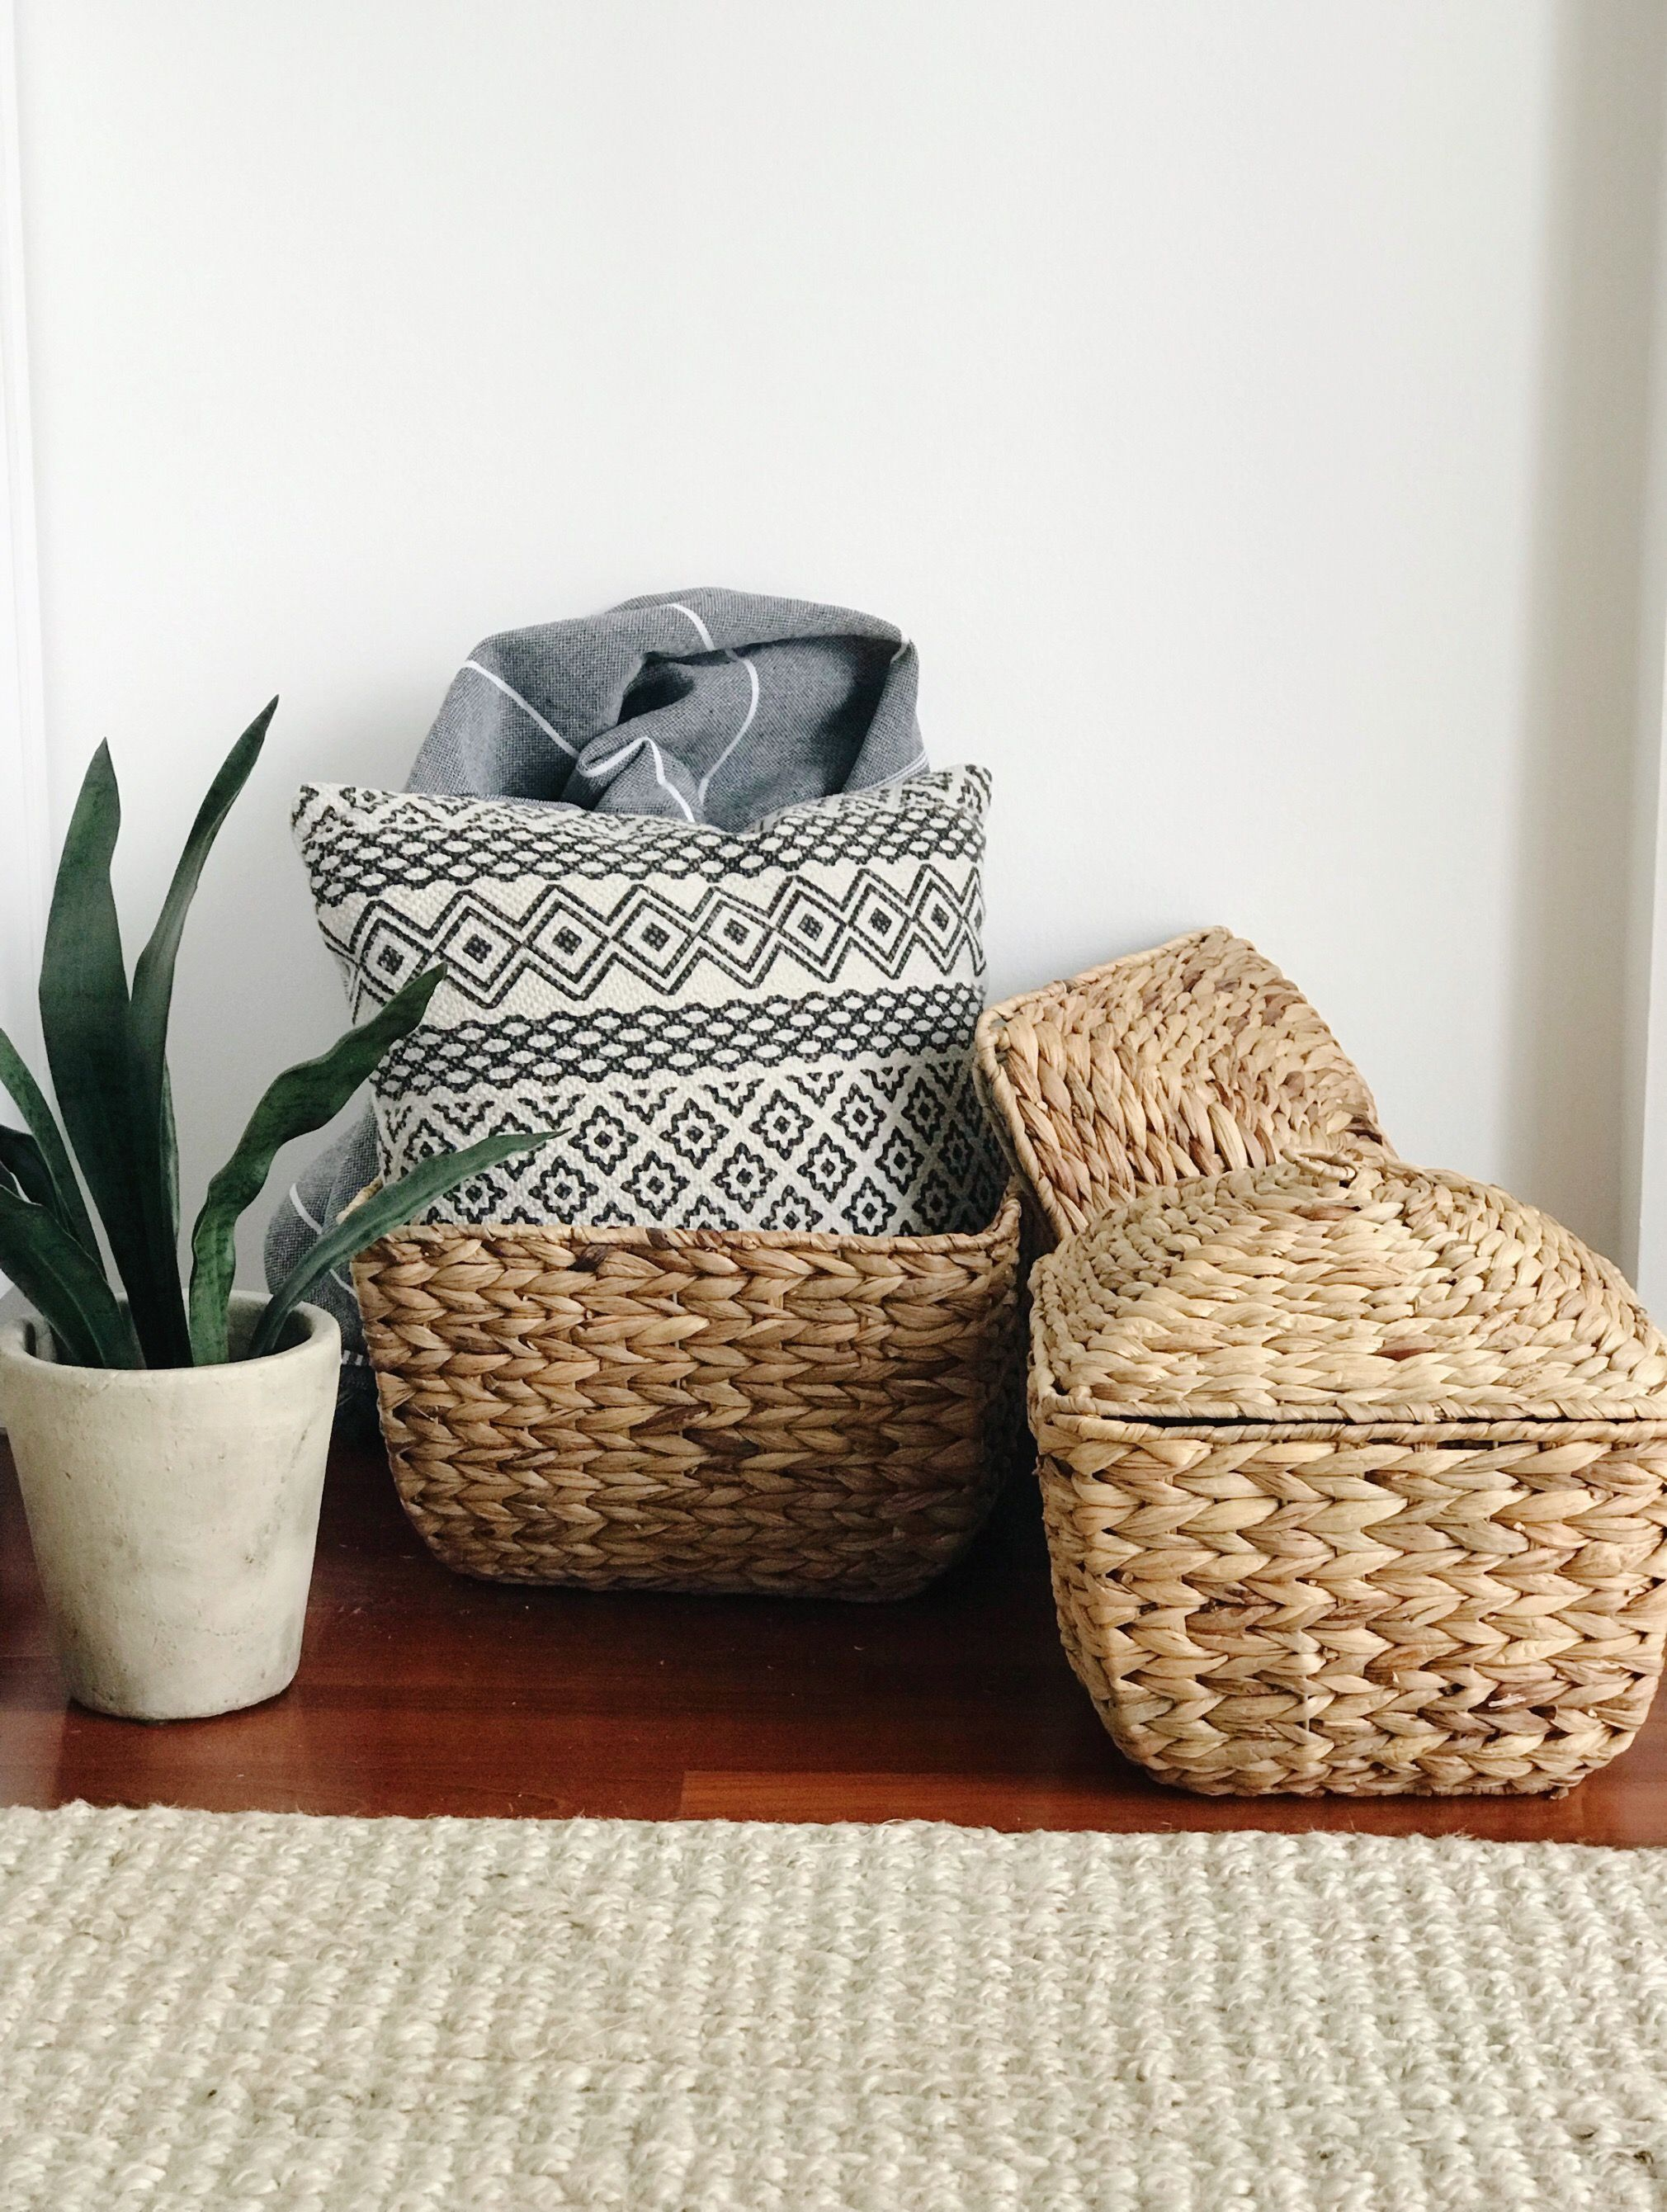 Bamboo Natural Woven Wicker Baskets With Lid Home Decor Bathroom Accessories Storage Tabletop Organizer Wicker Basket With Lid Accessories Storage Basket